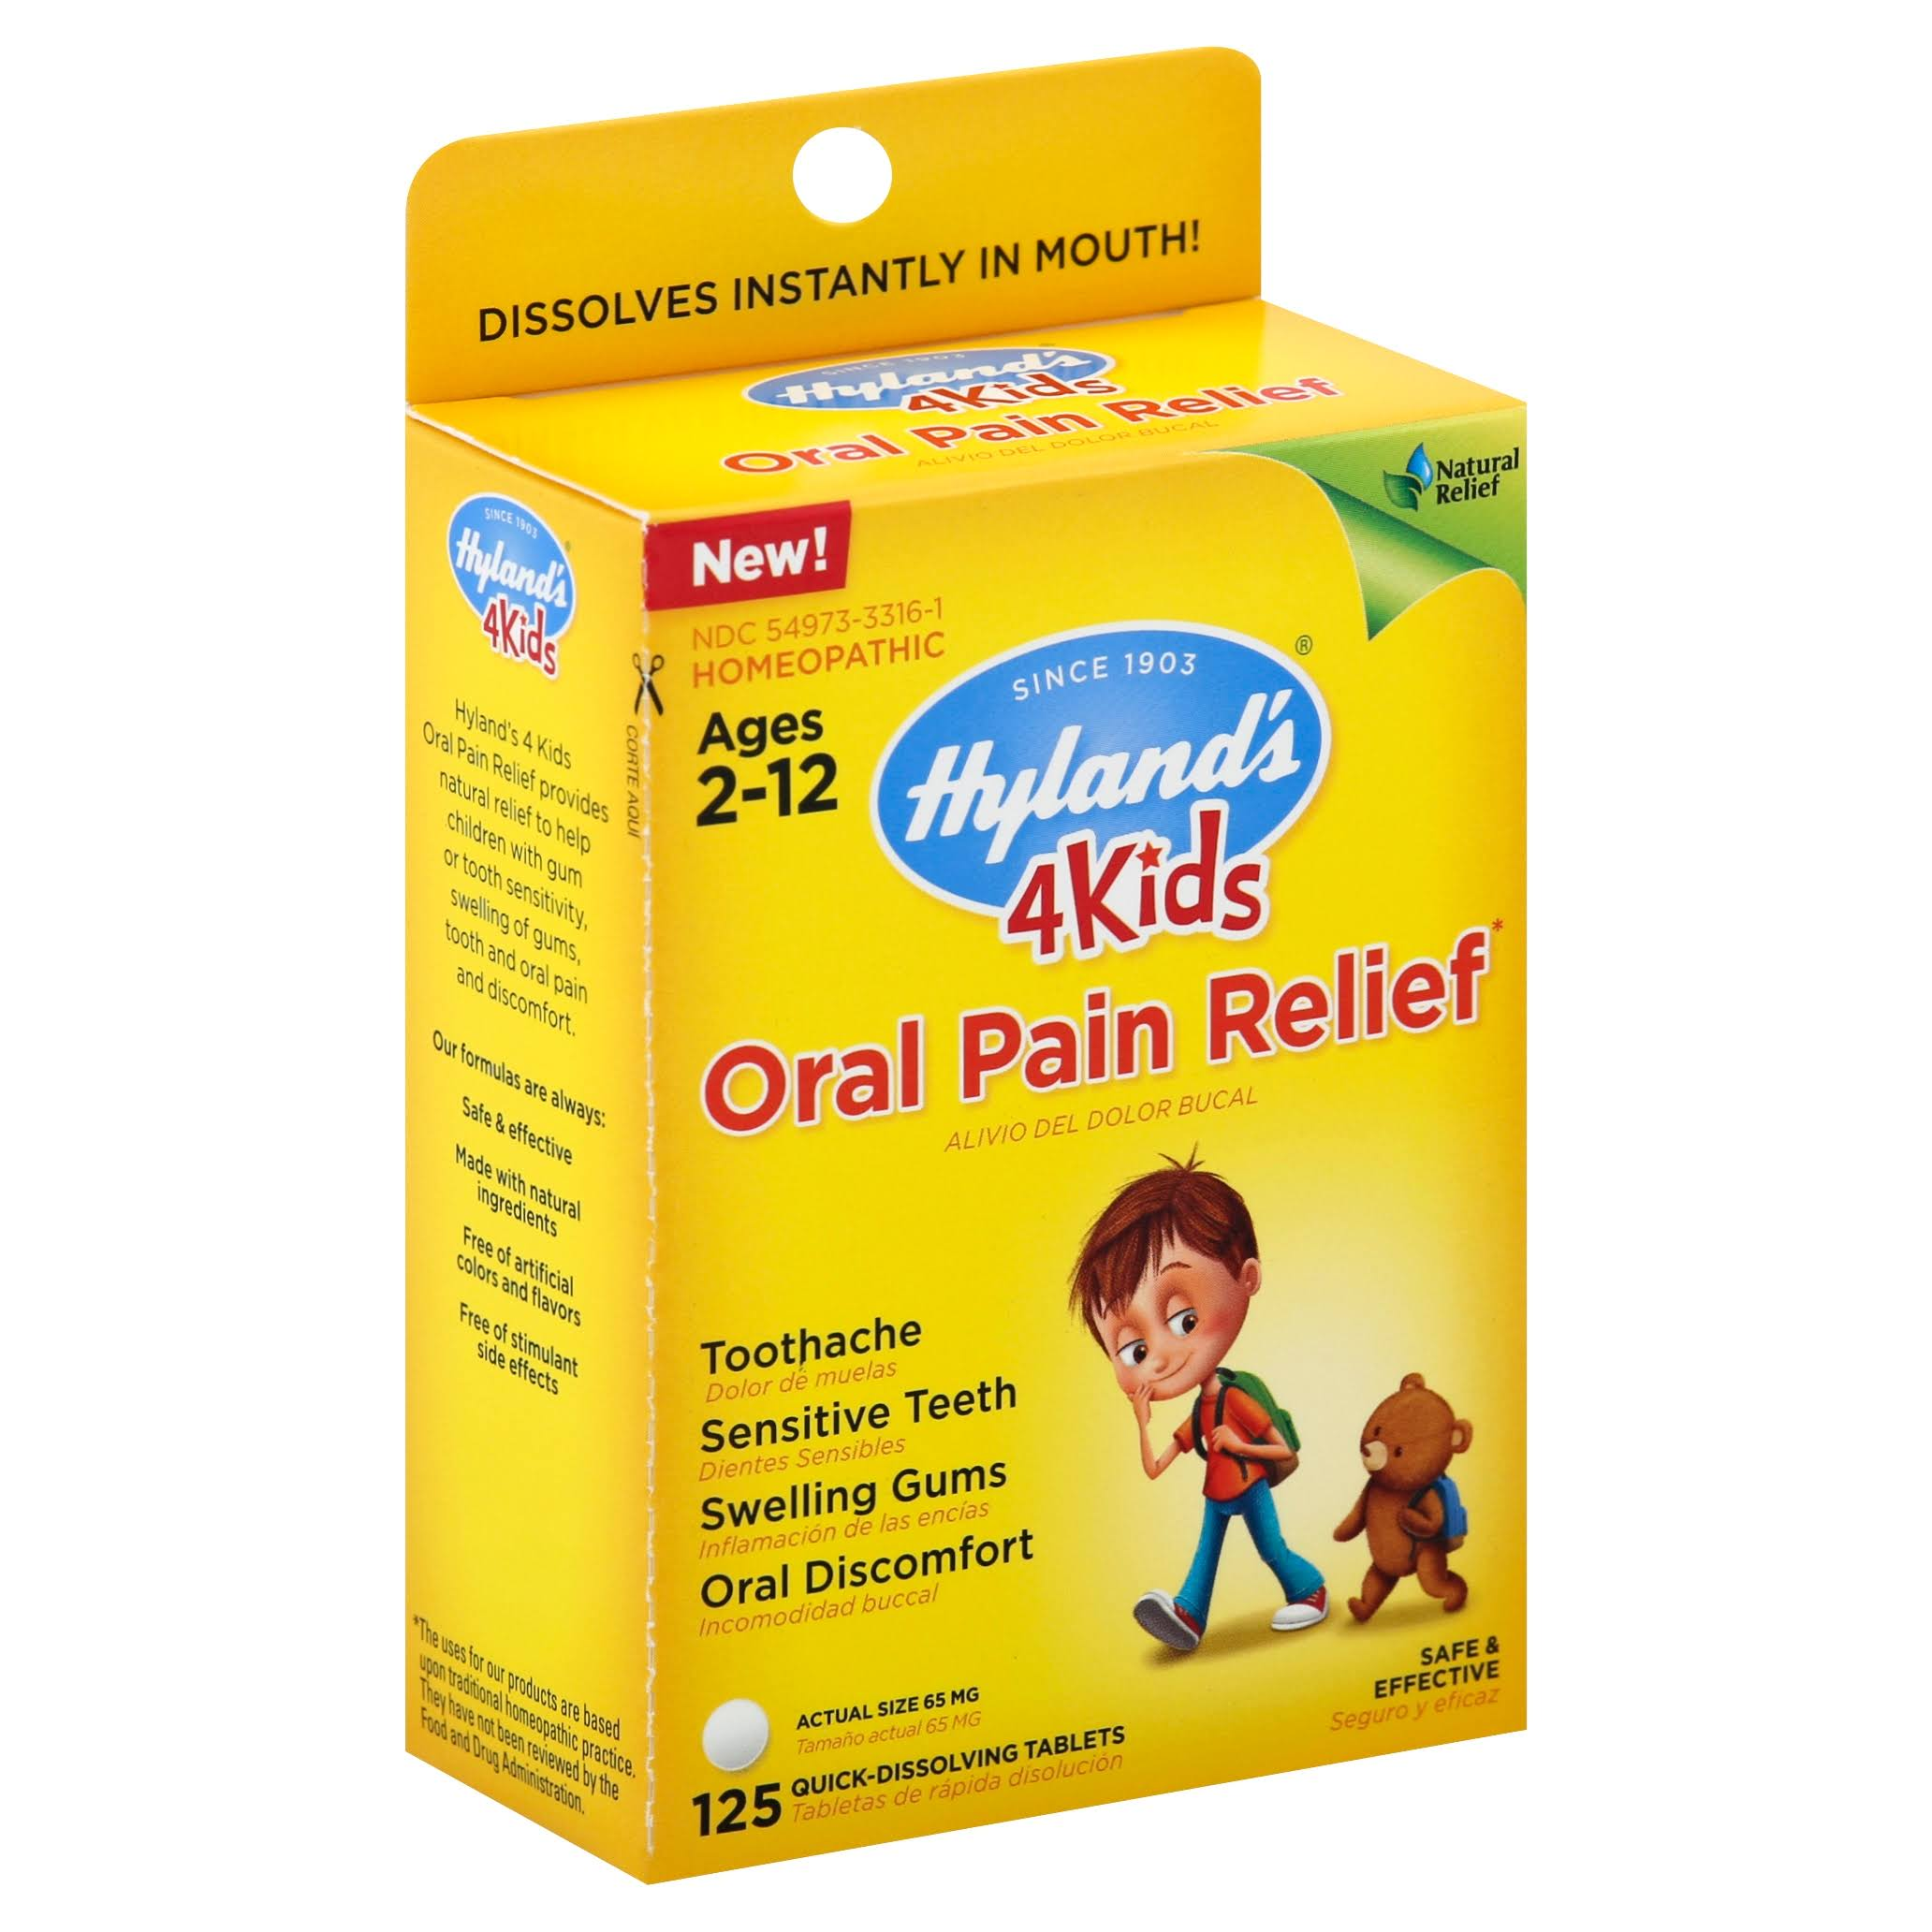 Hylands 4Kids Oral Pain Relief, 65 mg, Quick-Dissolving Tablets - 125 tablets